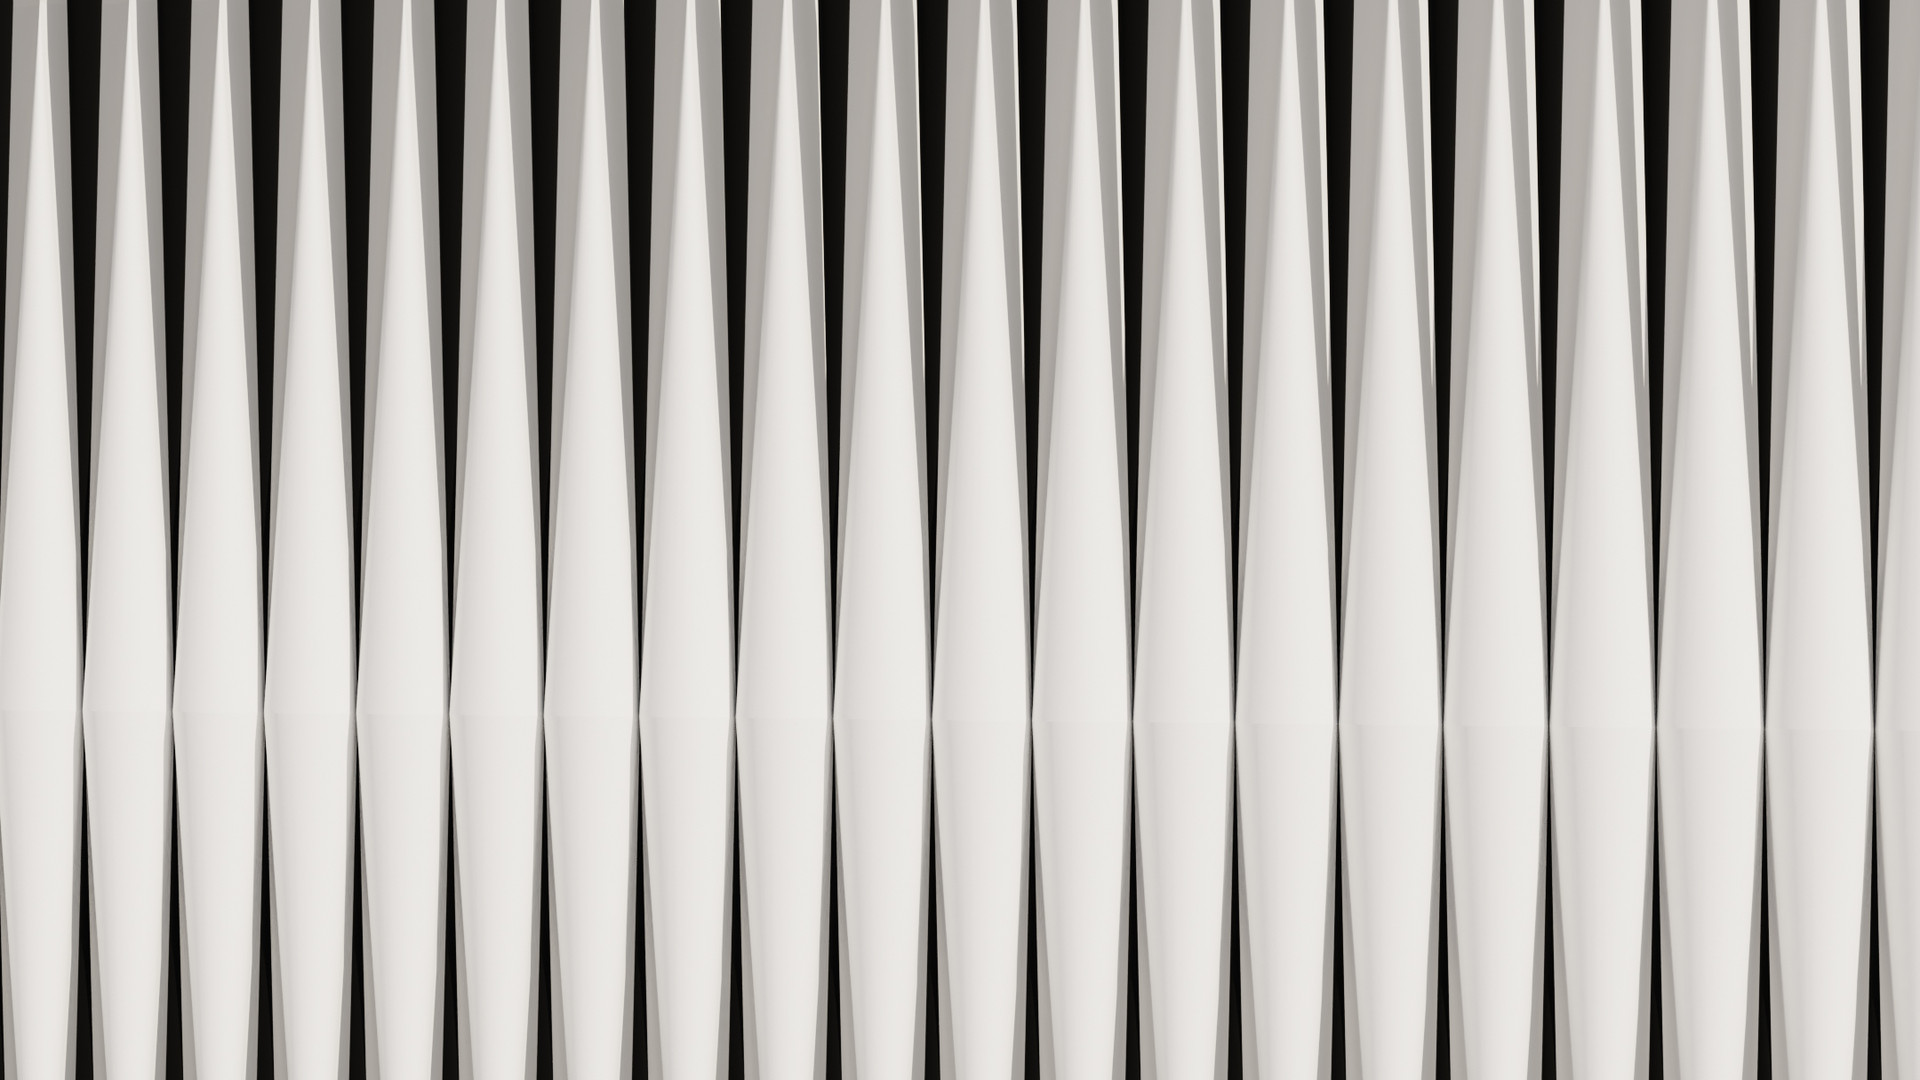 Arrayed Cone Wall Pattern